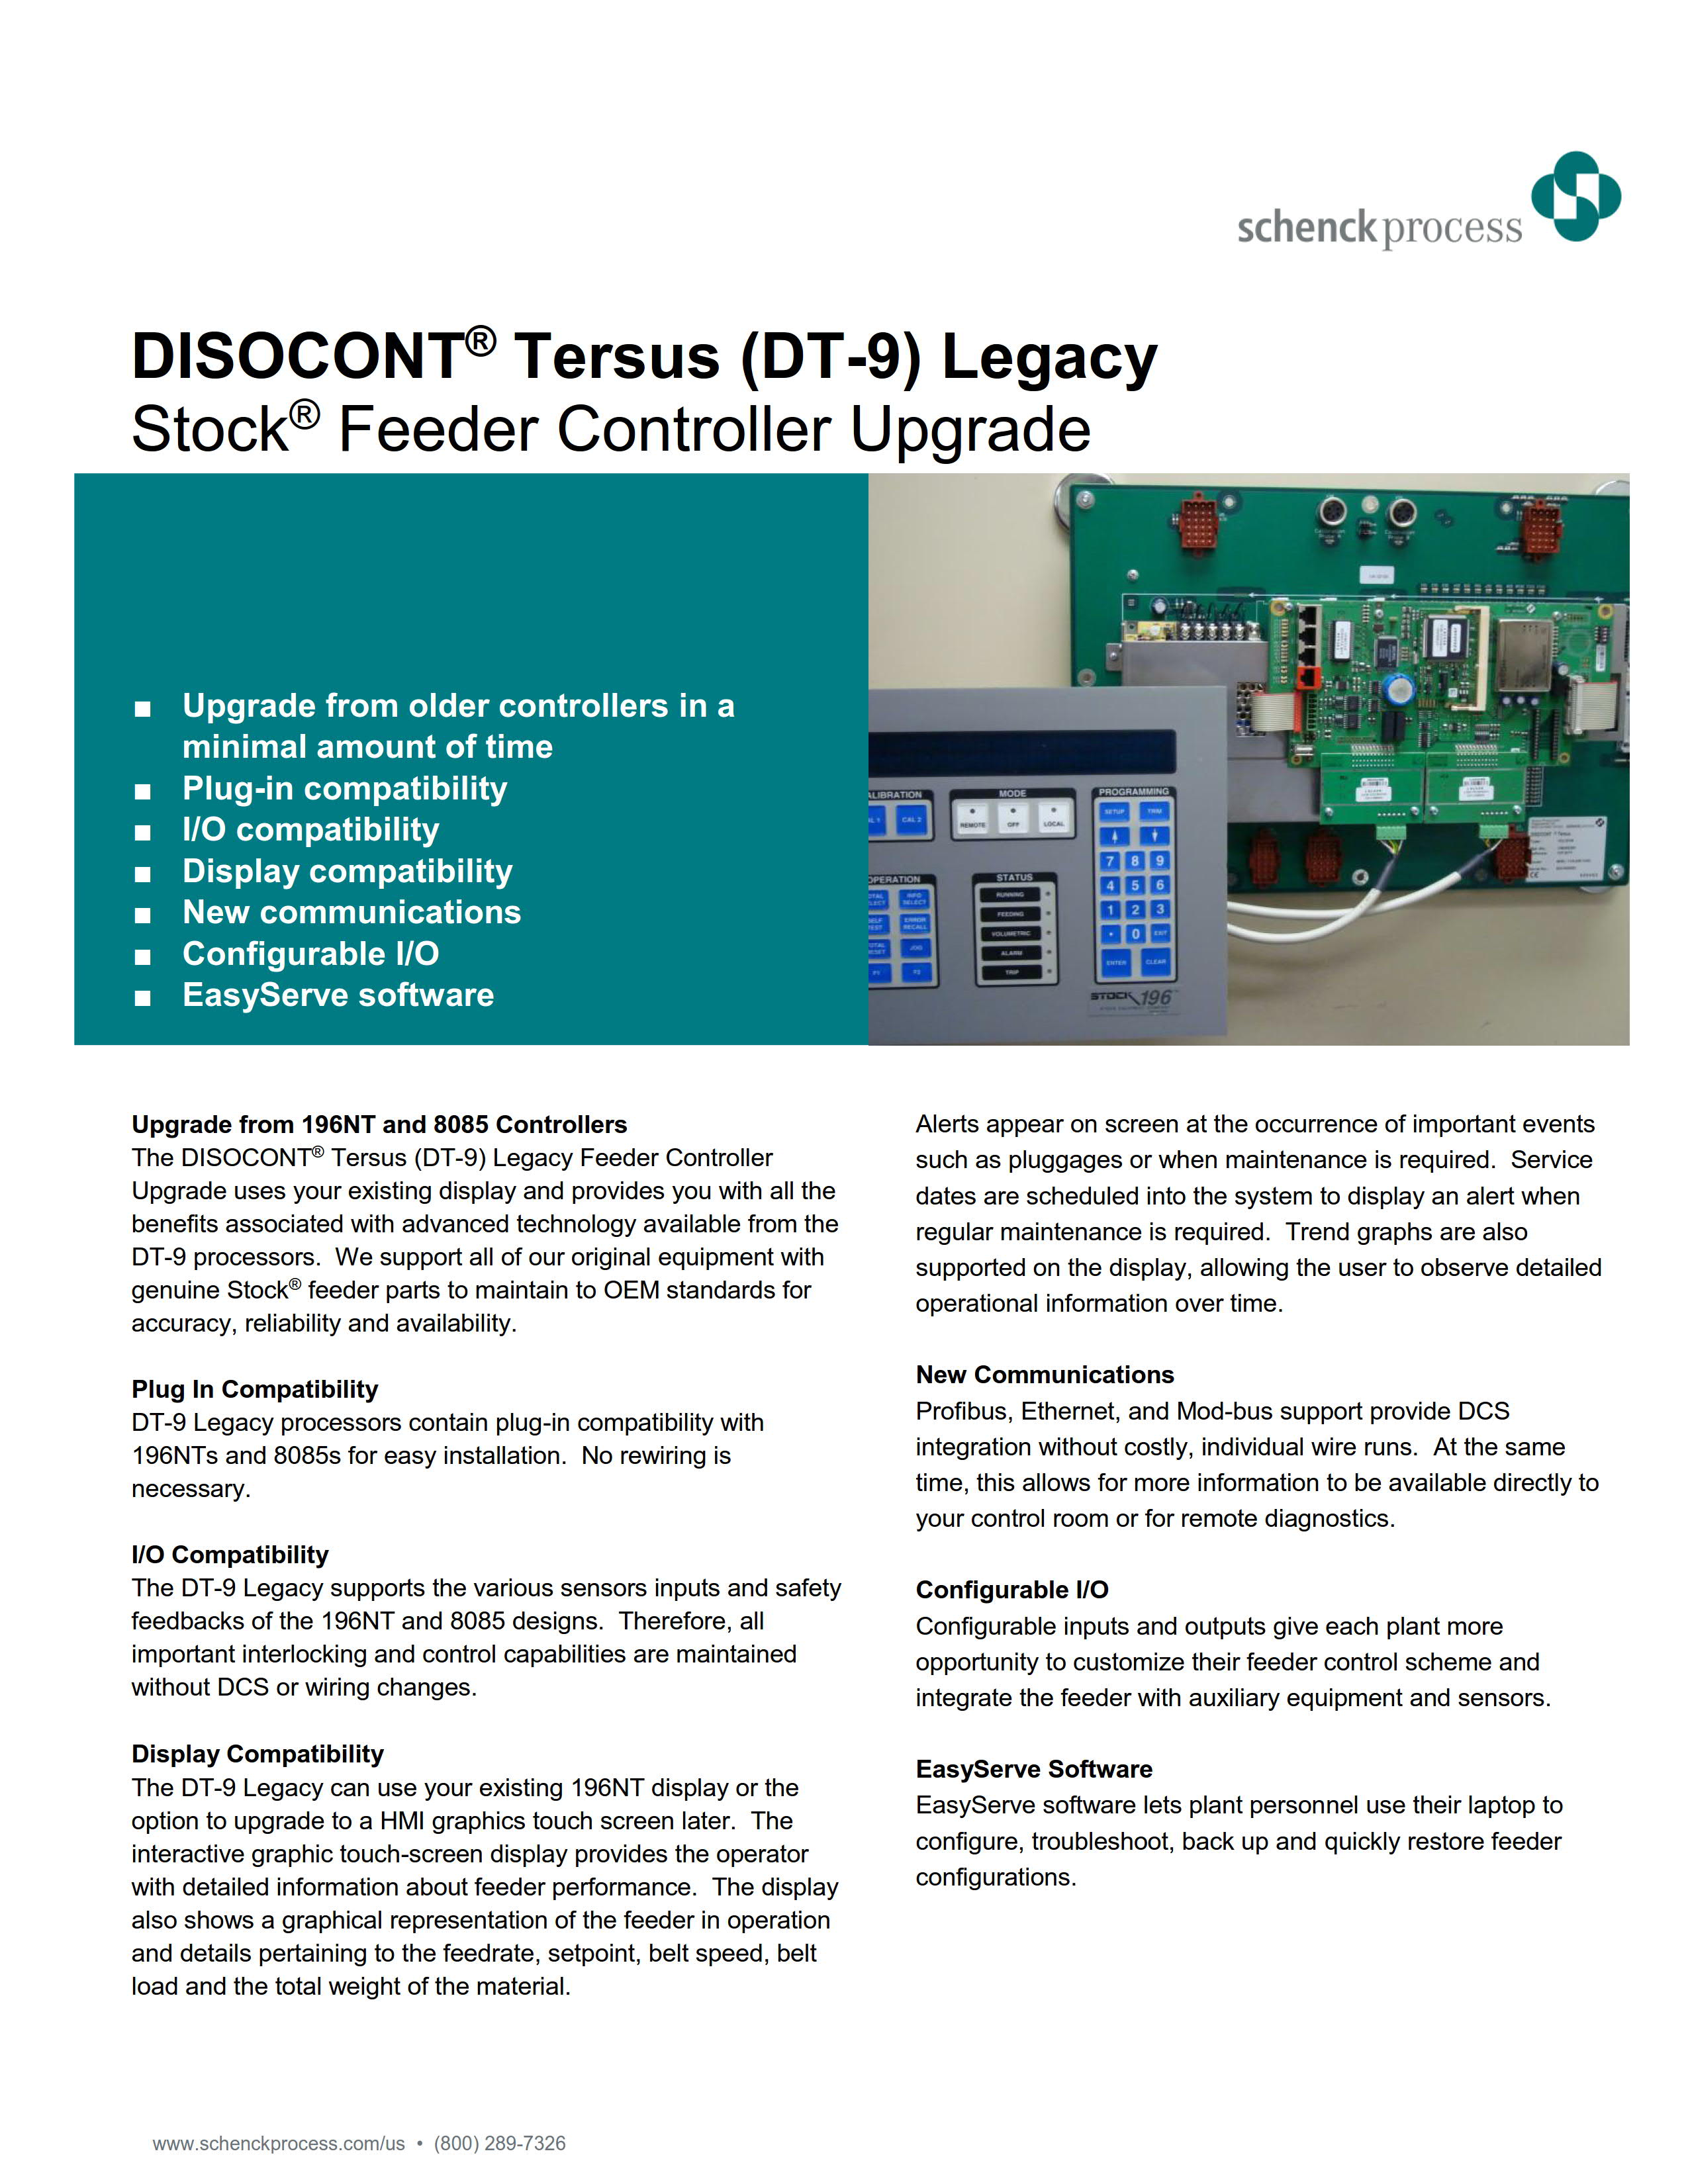 DISOCONT® Tersus (DT-9) Legacy Stock® Feeder Controller Upgrade